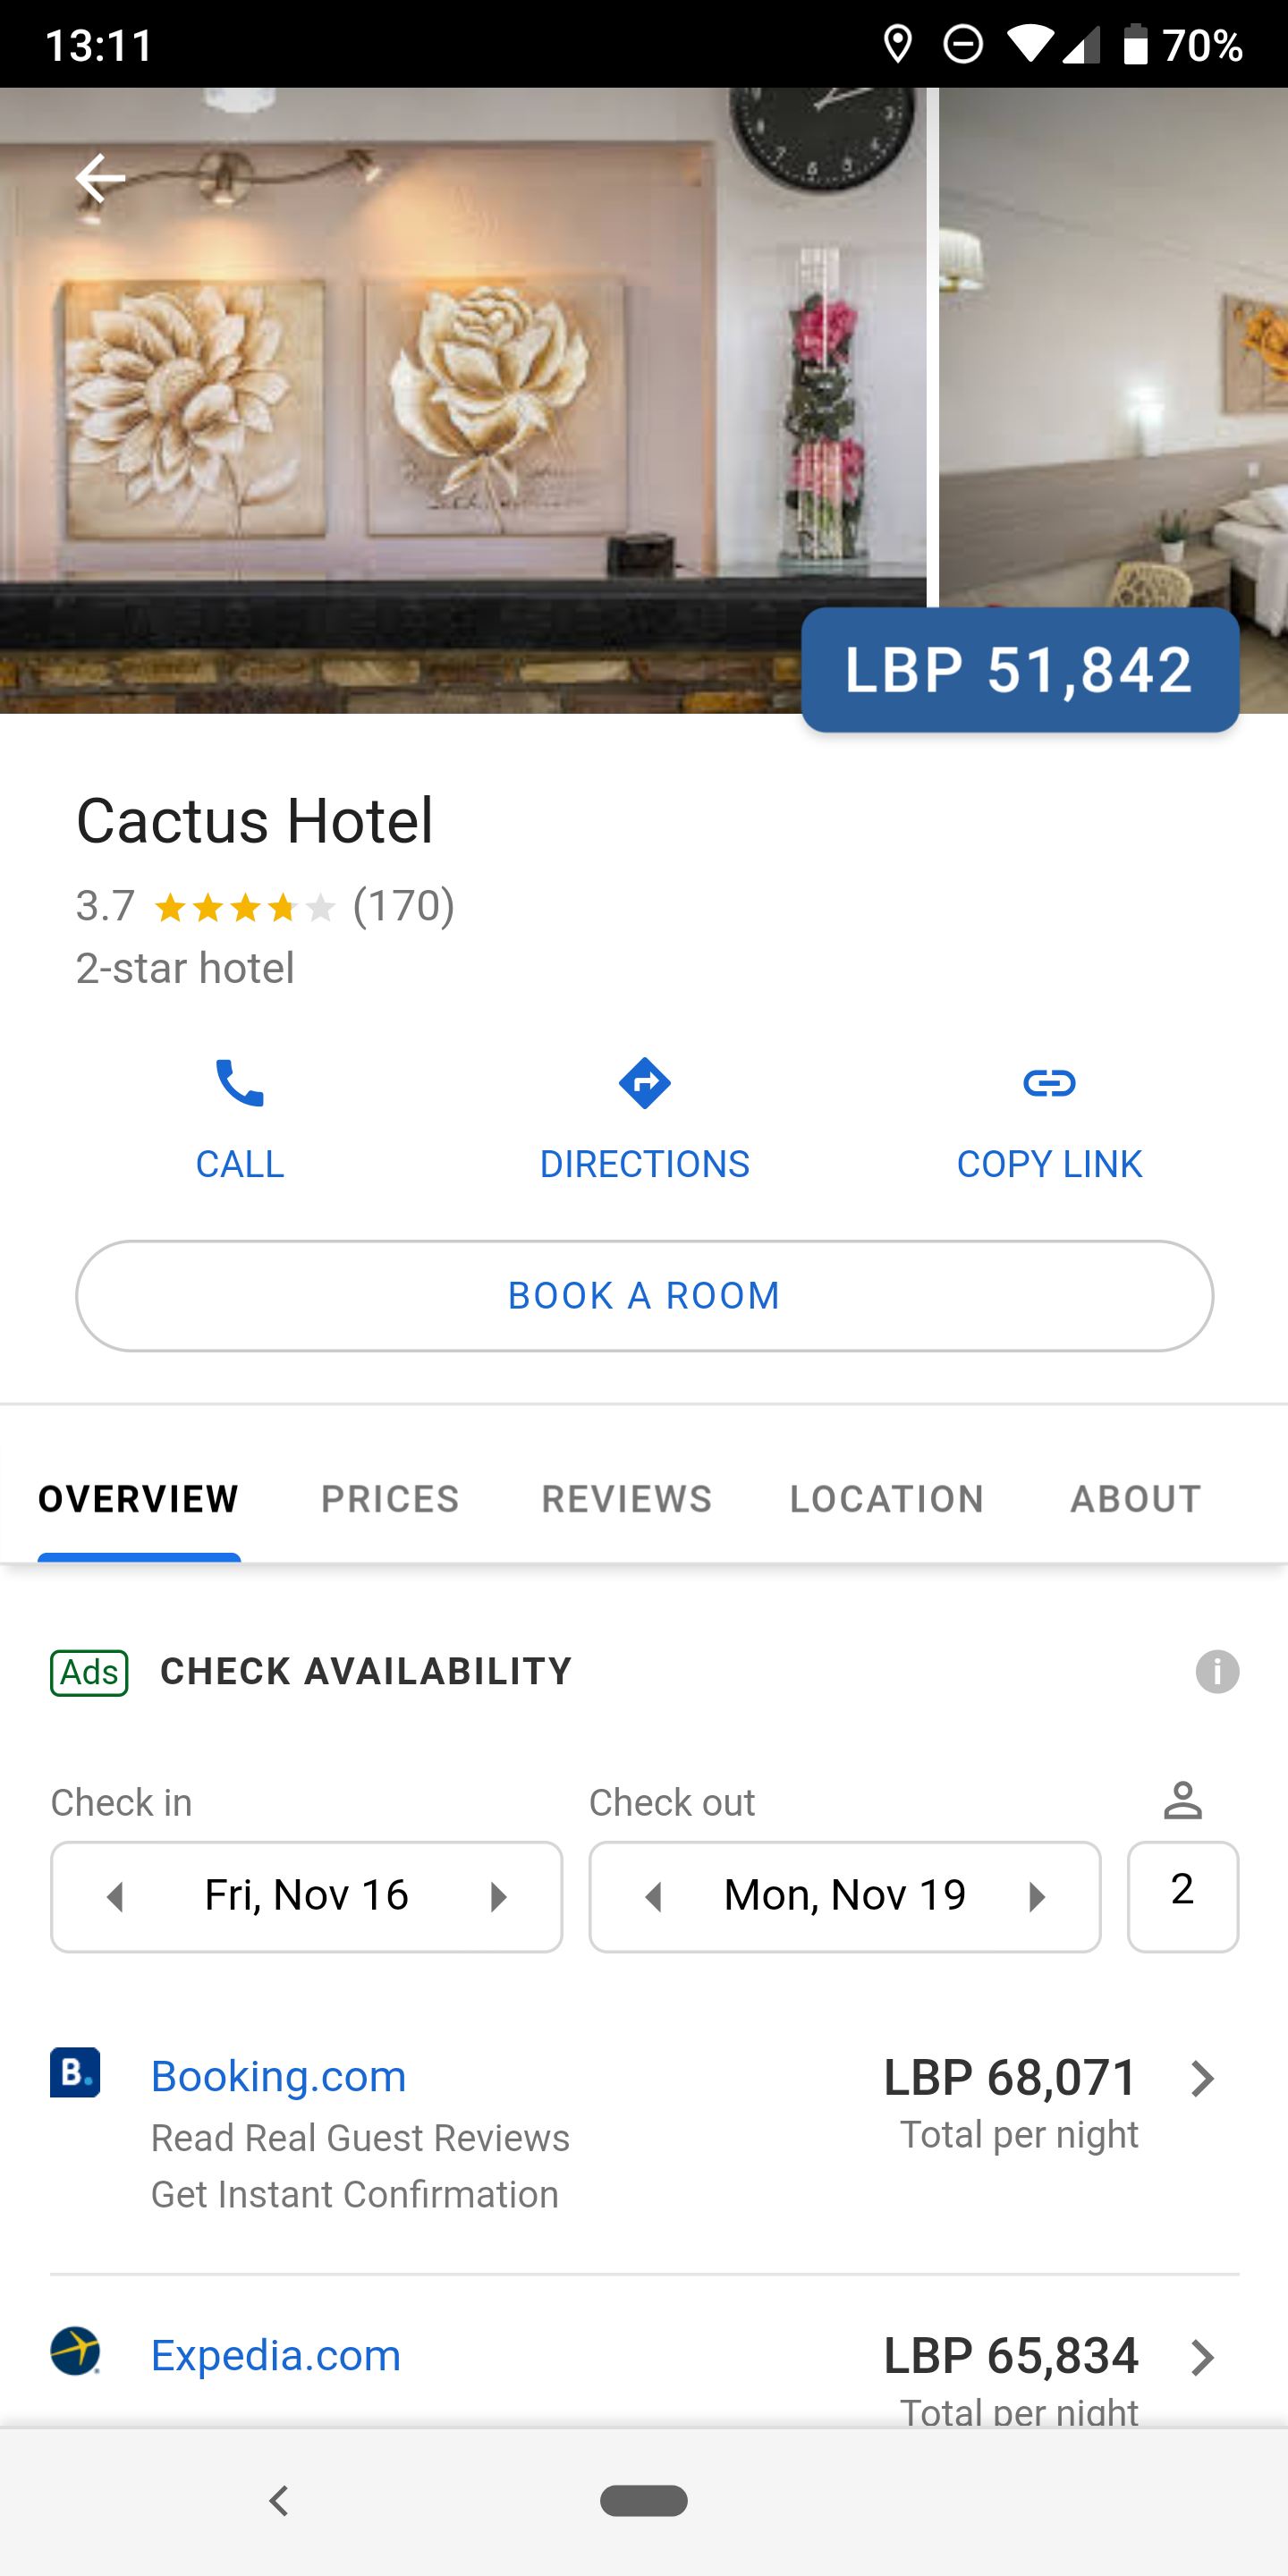 Google Maps overhauls hotel listings with price and location